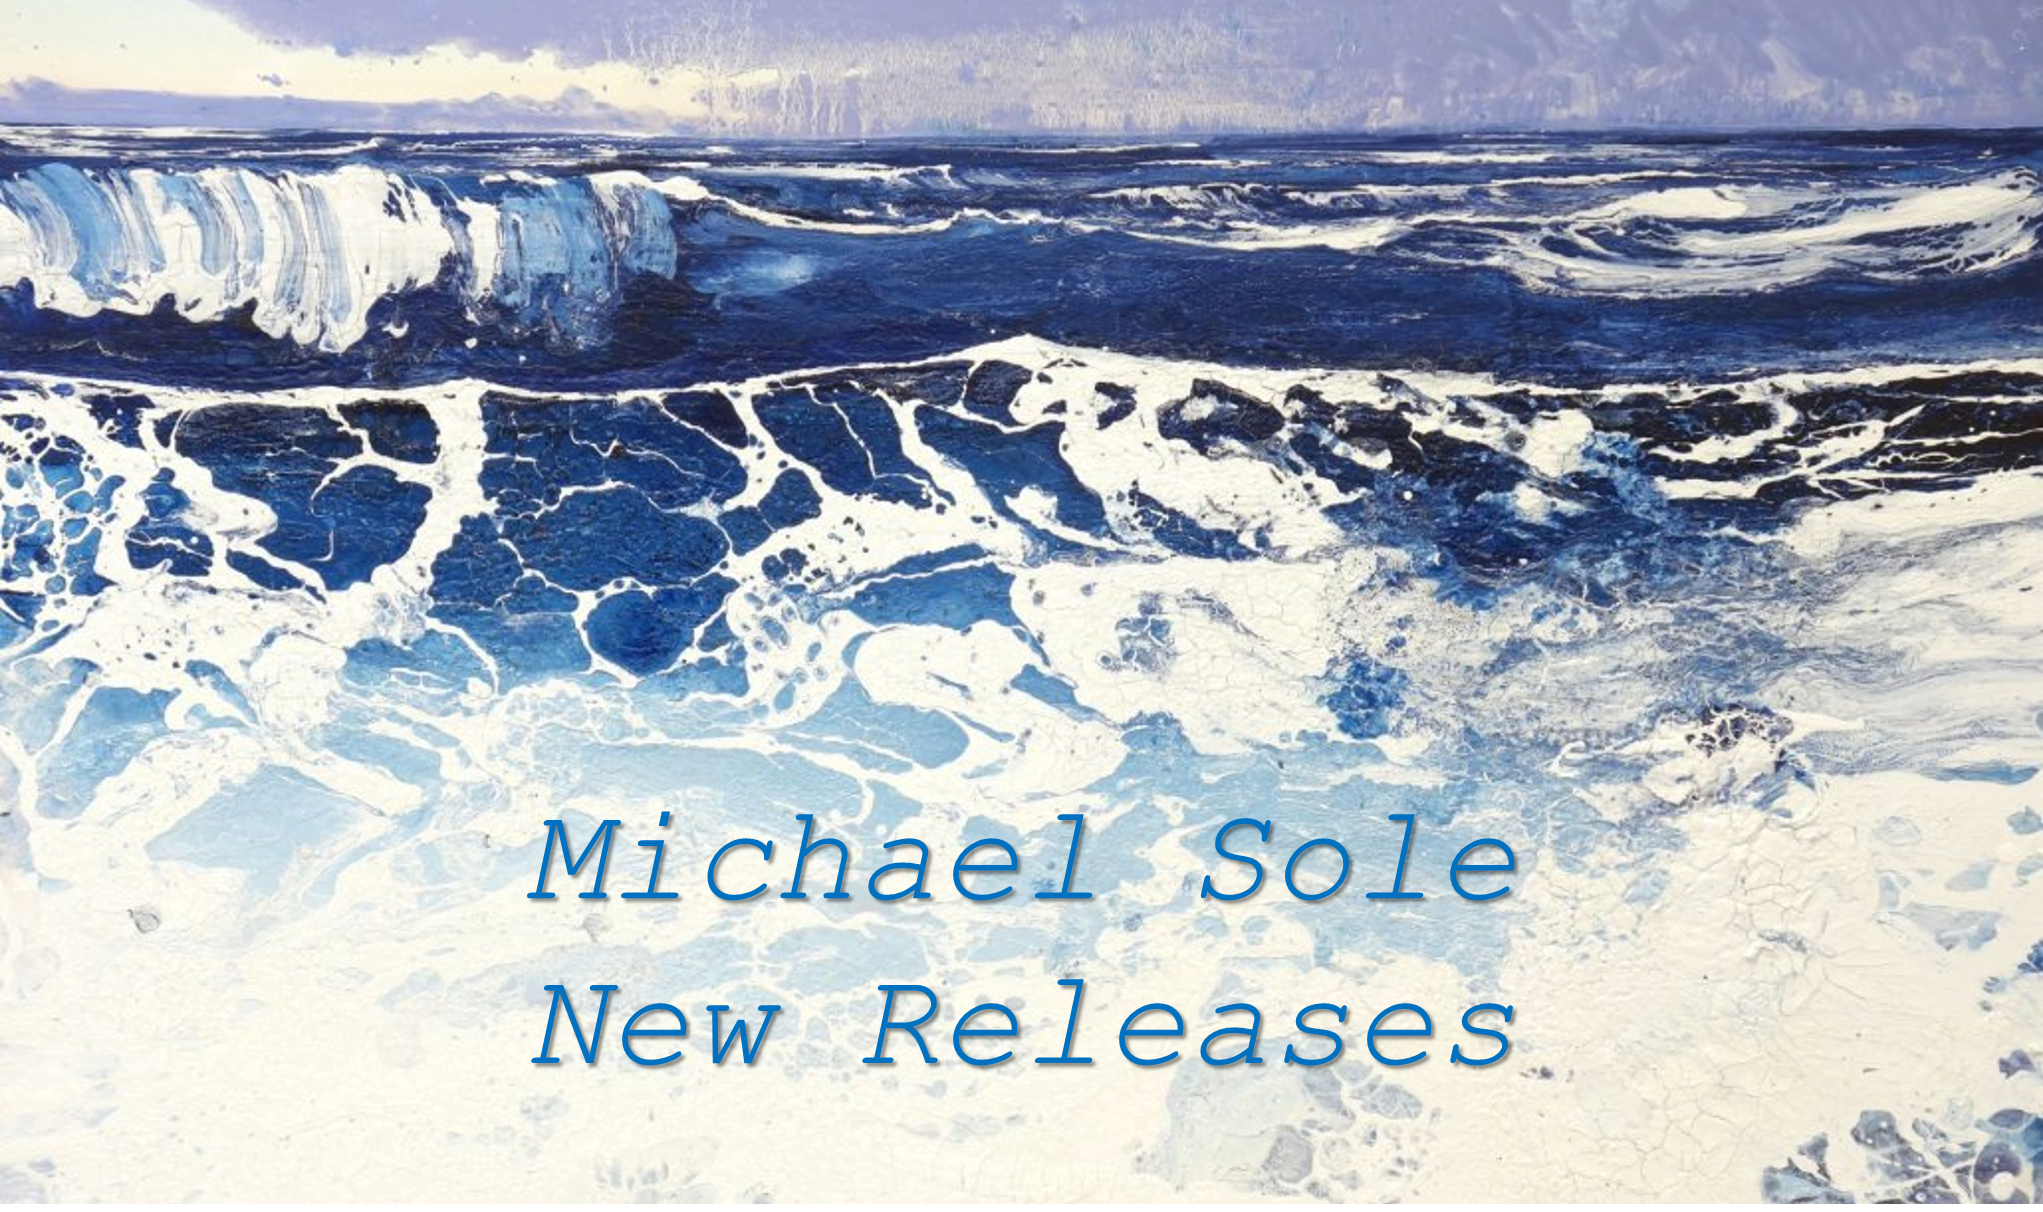 michael sole new releases banner3